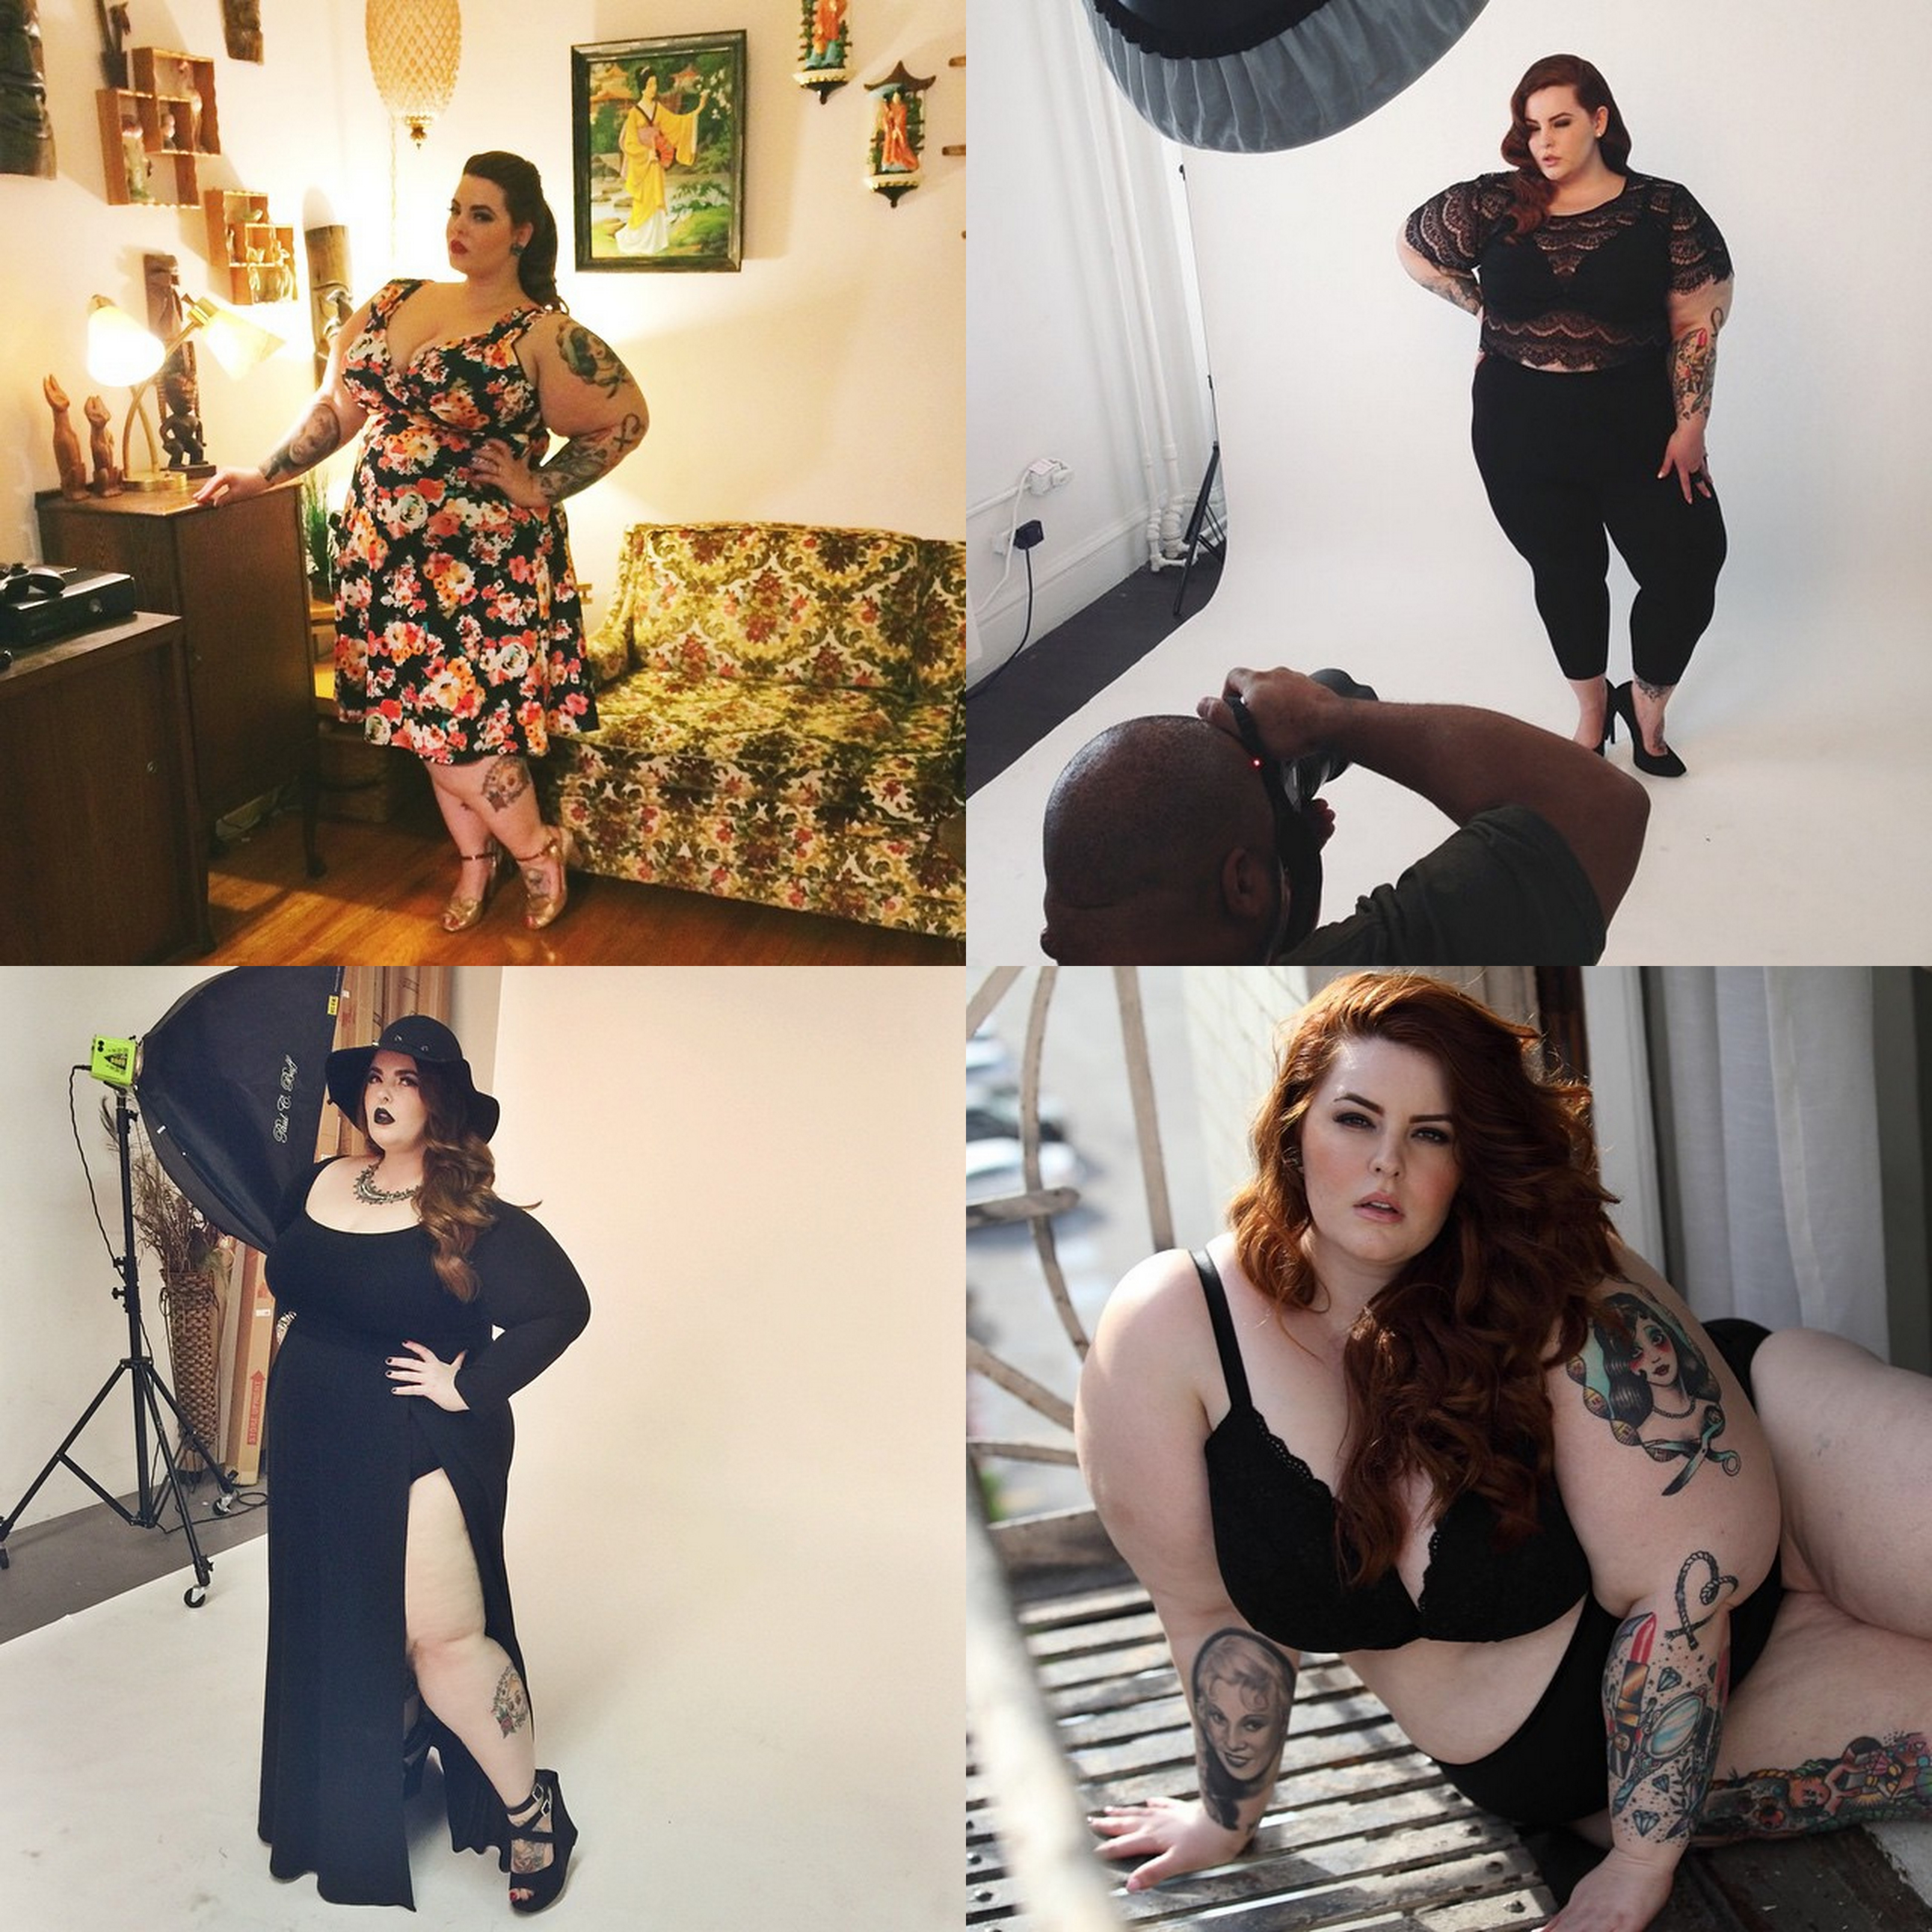 Plus size model Tess Holliday